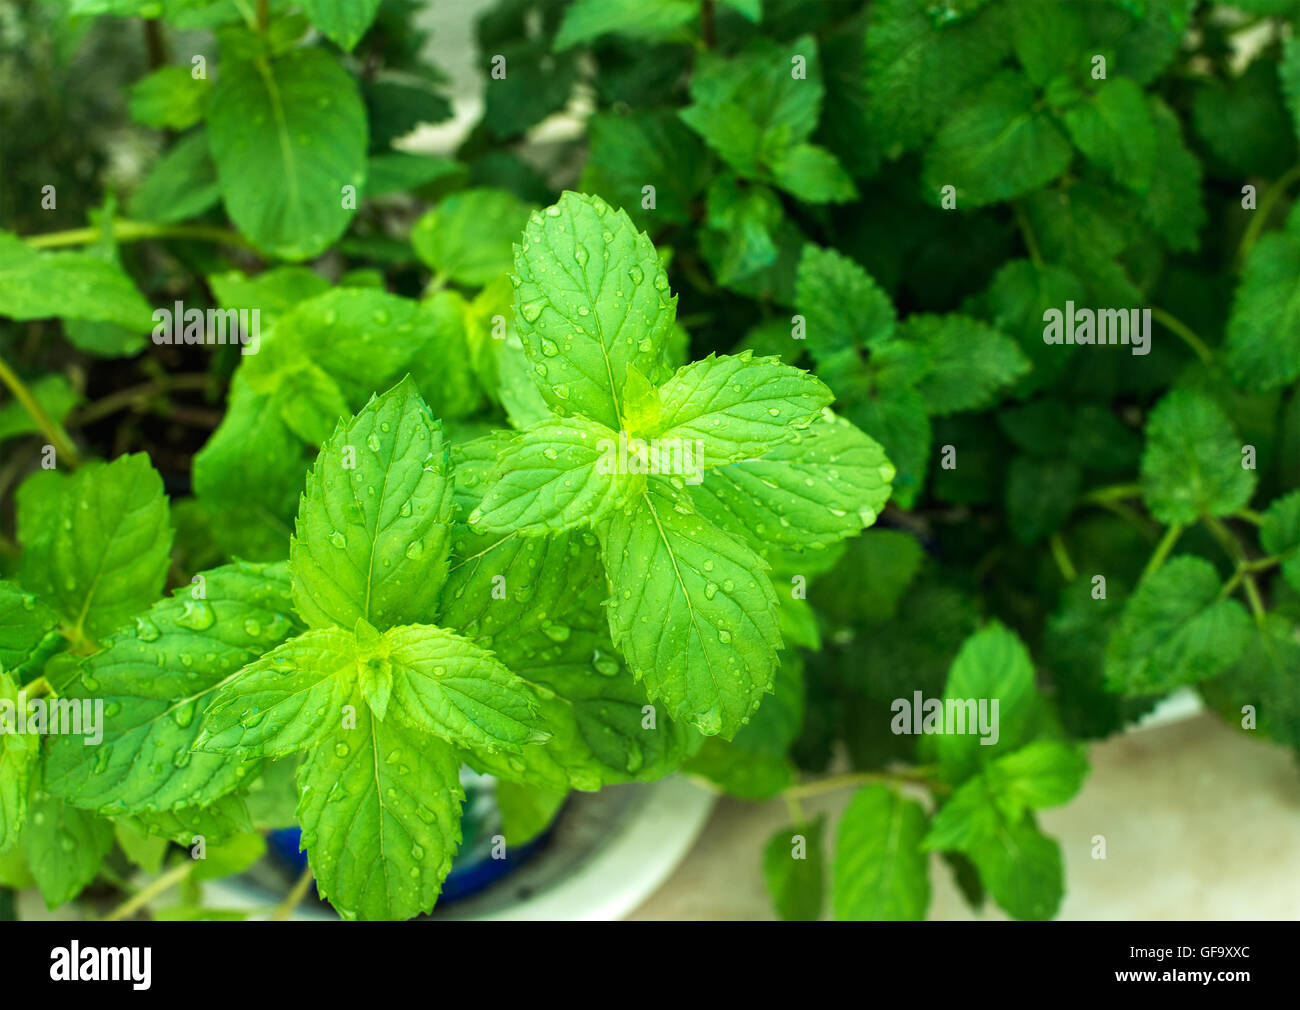 Closeup of fresh mint plant leaves with water drops - Stock Image